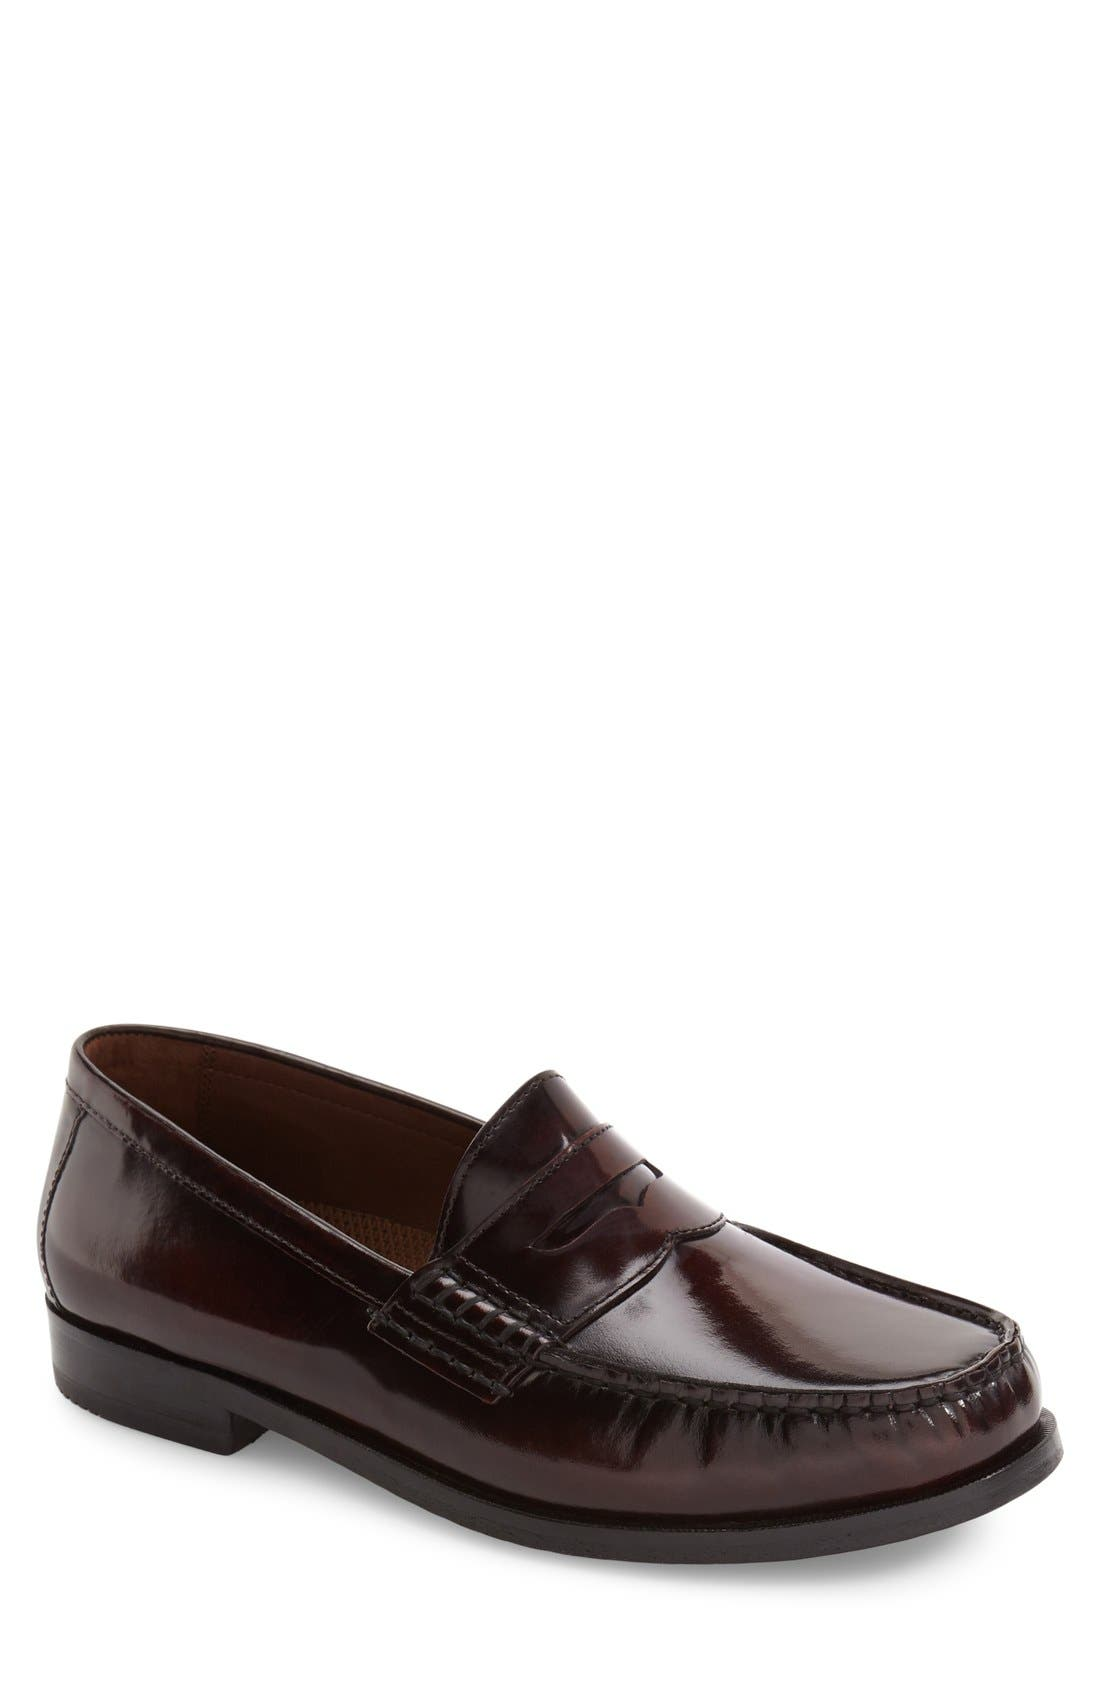 Pannell Penny Loafer,                             Main thumbnail 1, color,                             Burgundy Leather